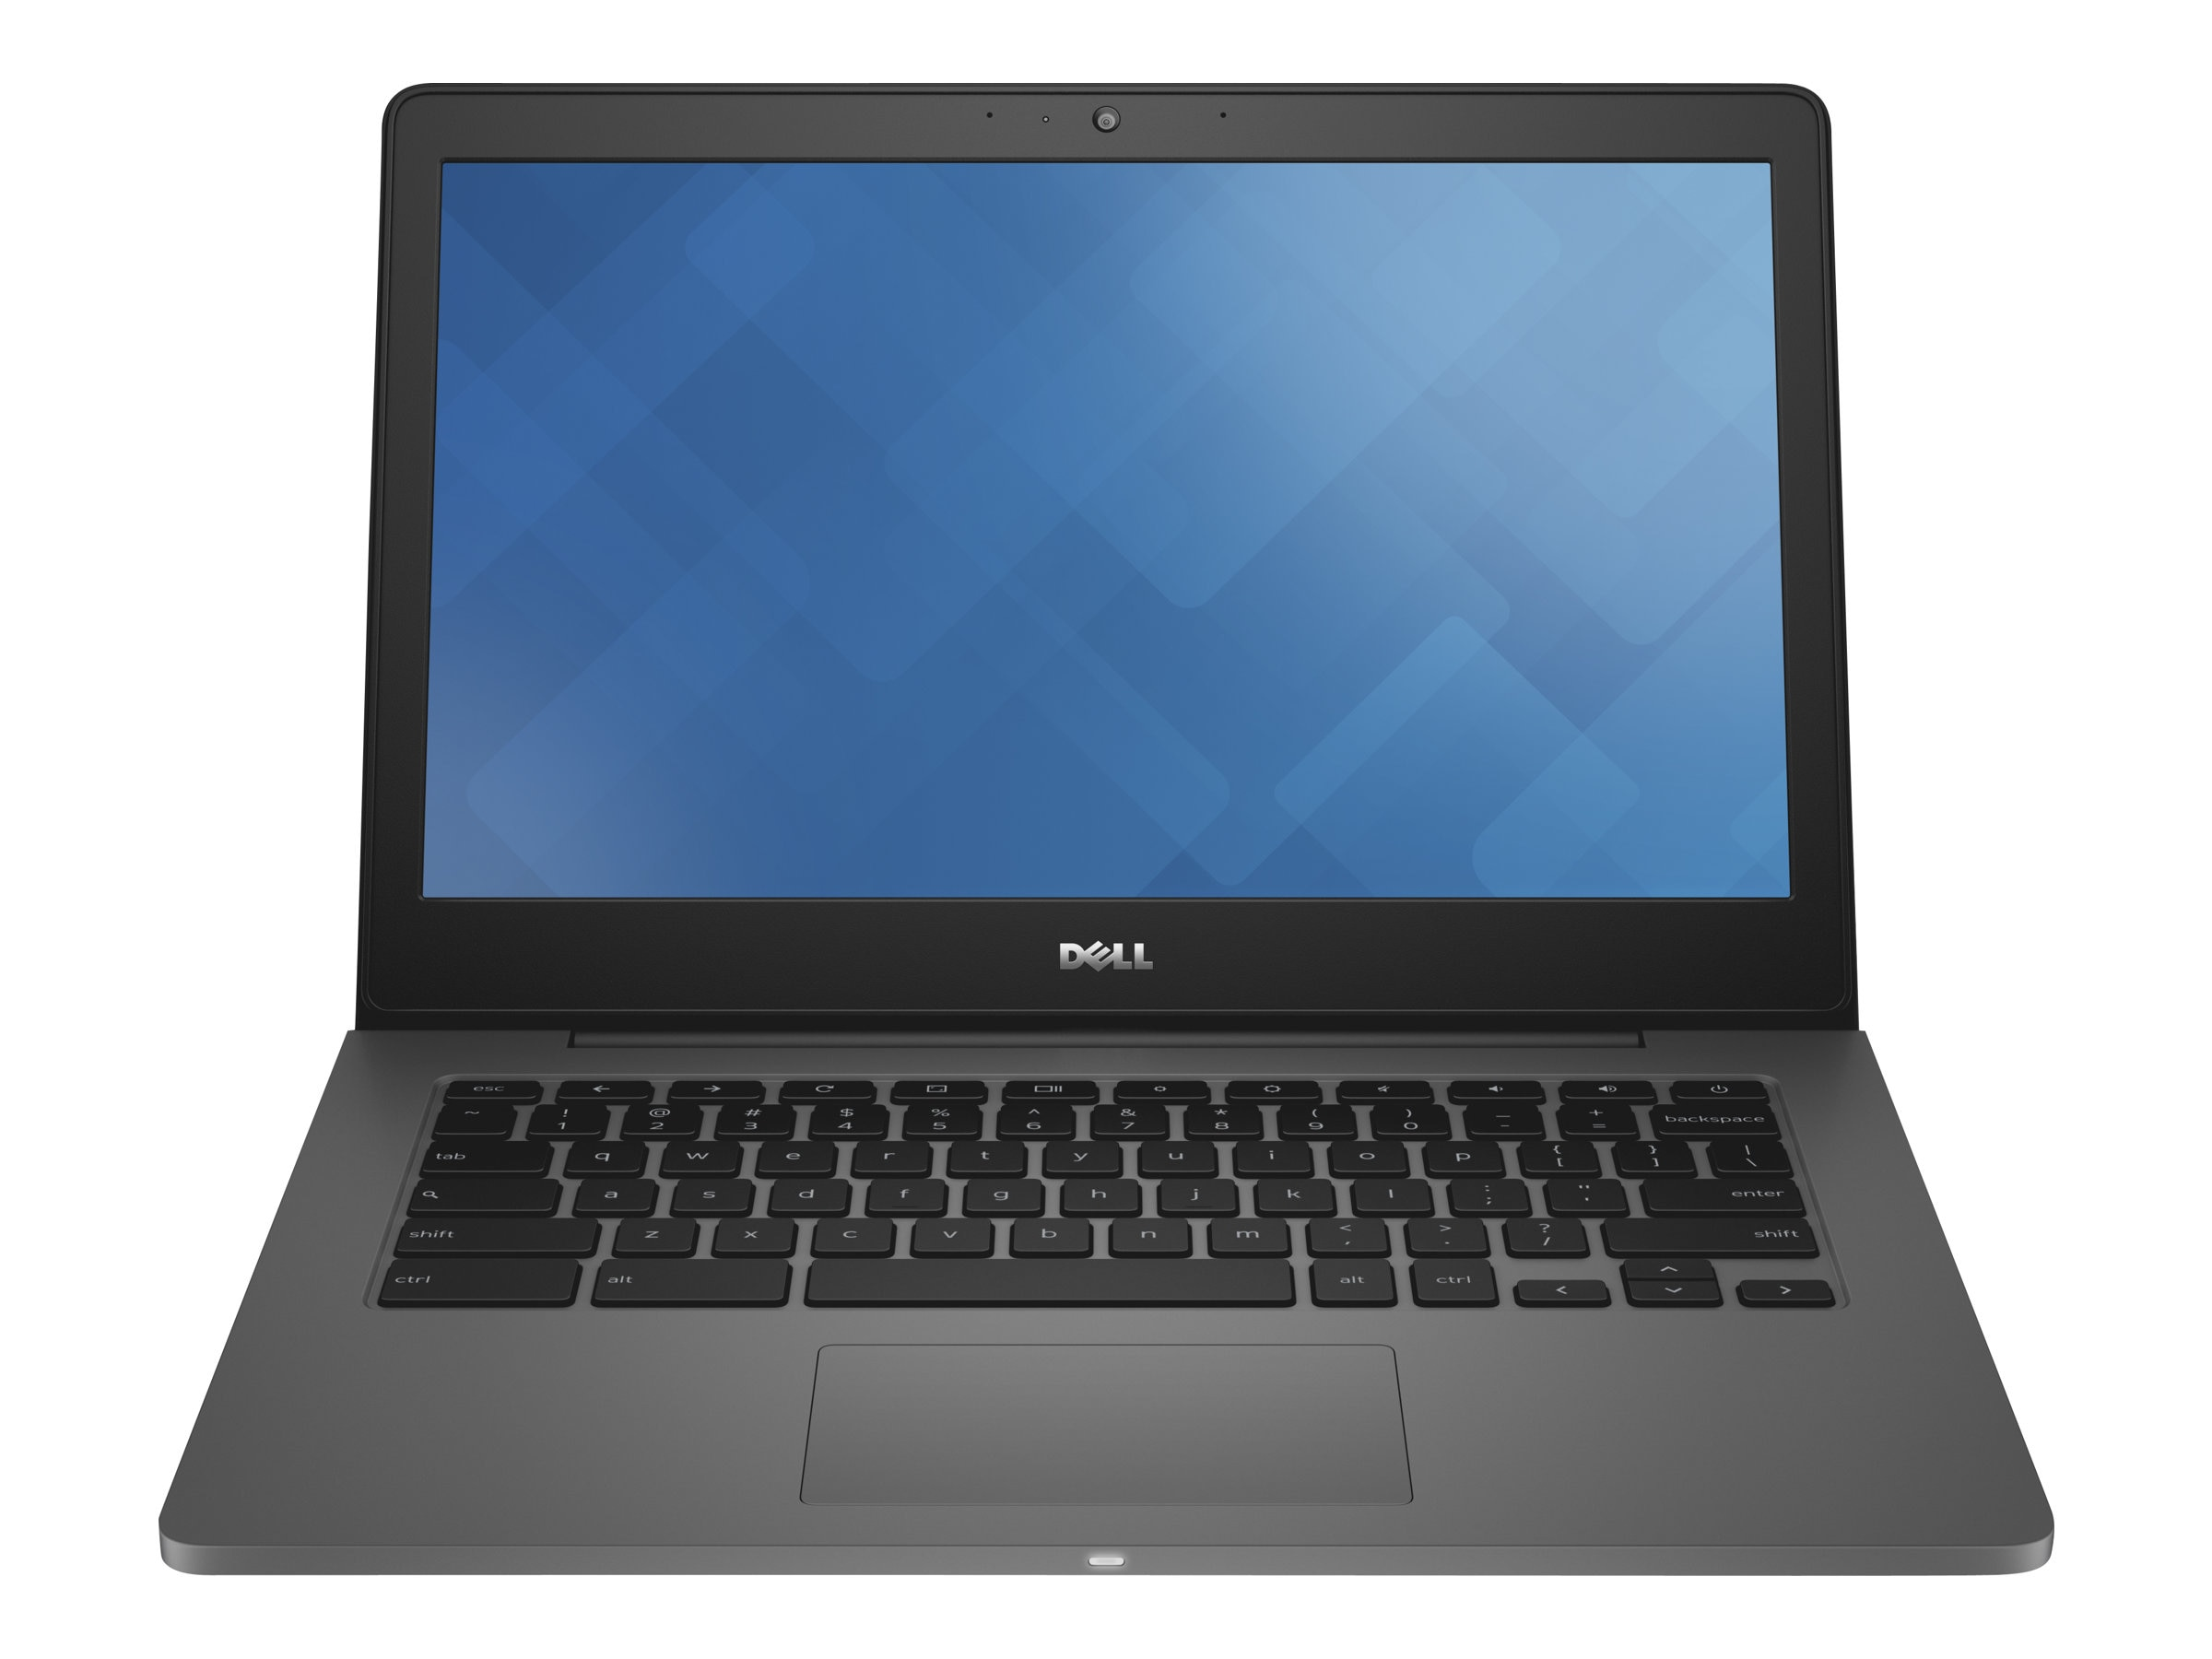 Dell Chromebook 13 Celeron 3215U 1.7GHz 4GB 16GB ac BT 6C 13.3 FHD Chrome OS, 34F2C